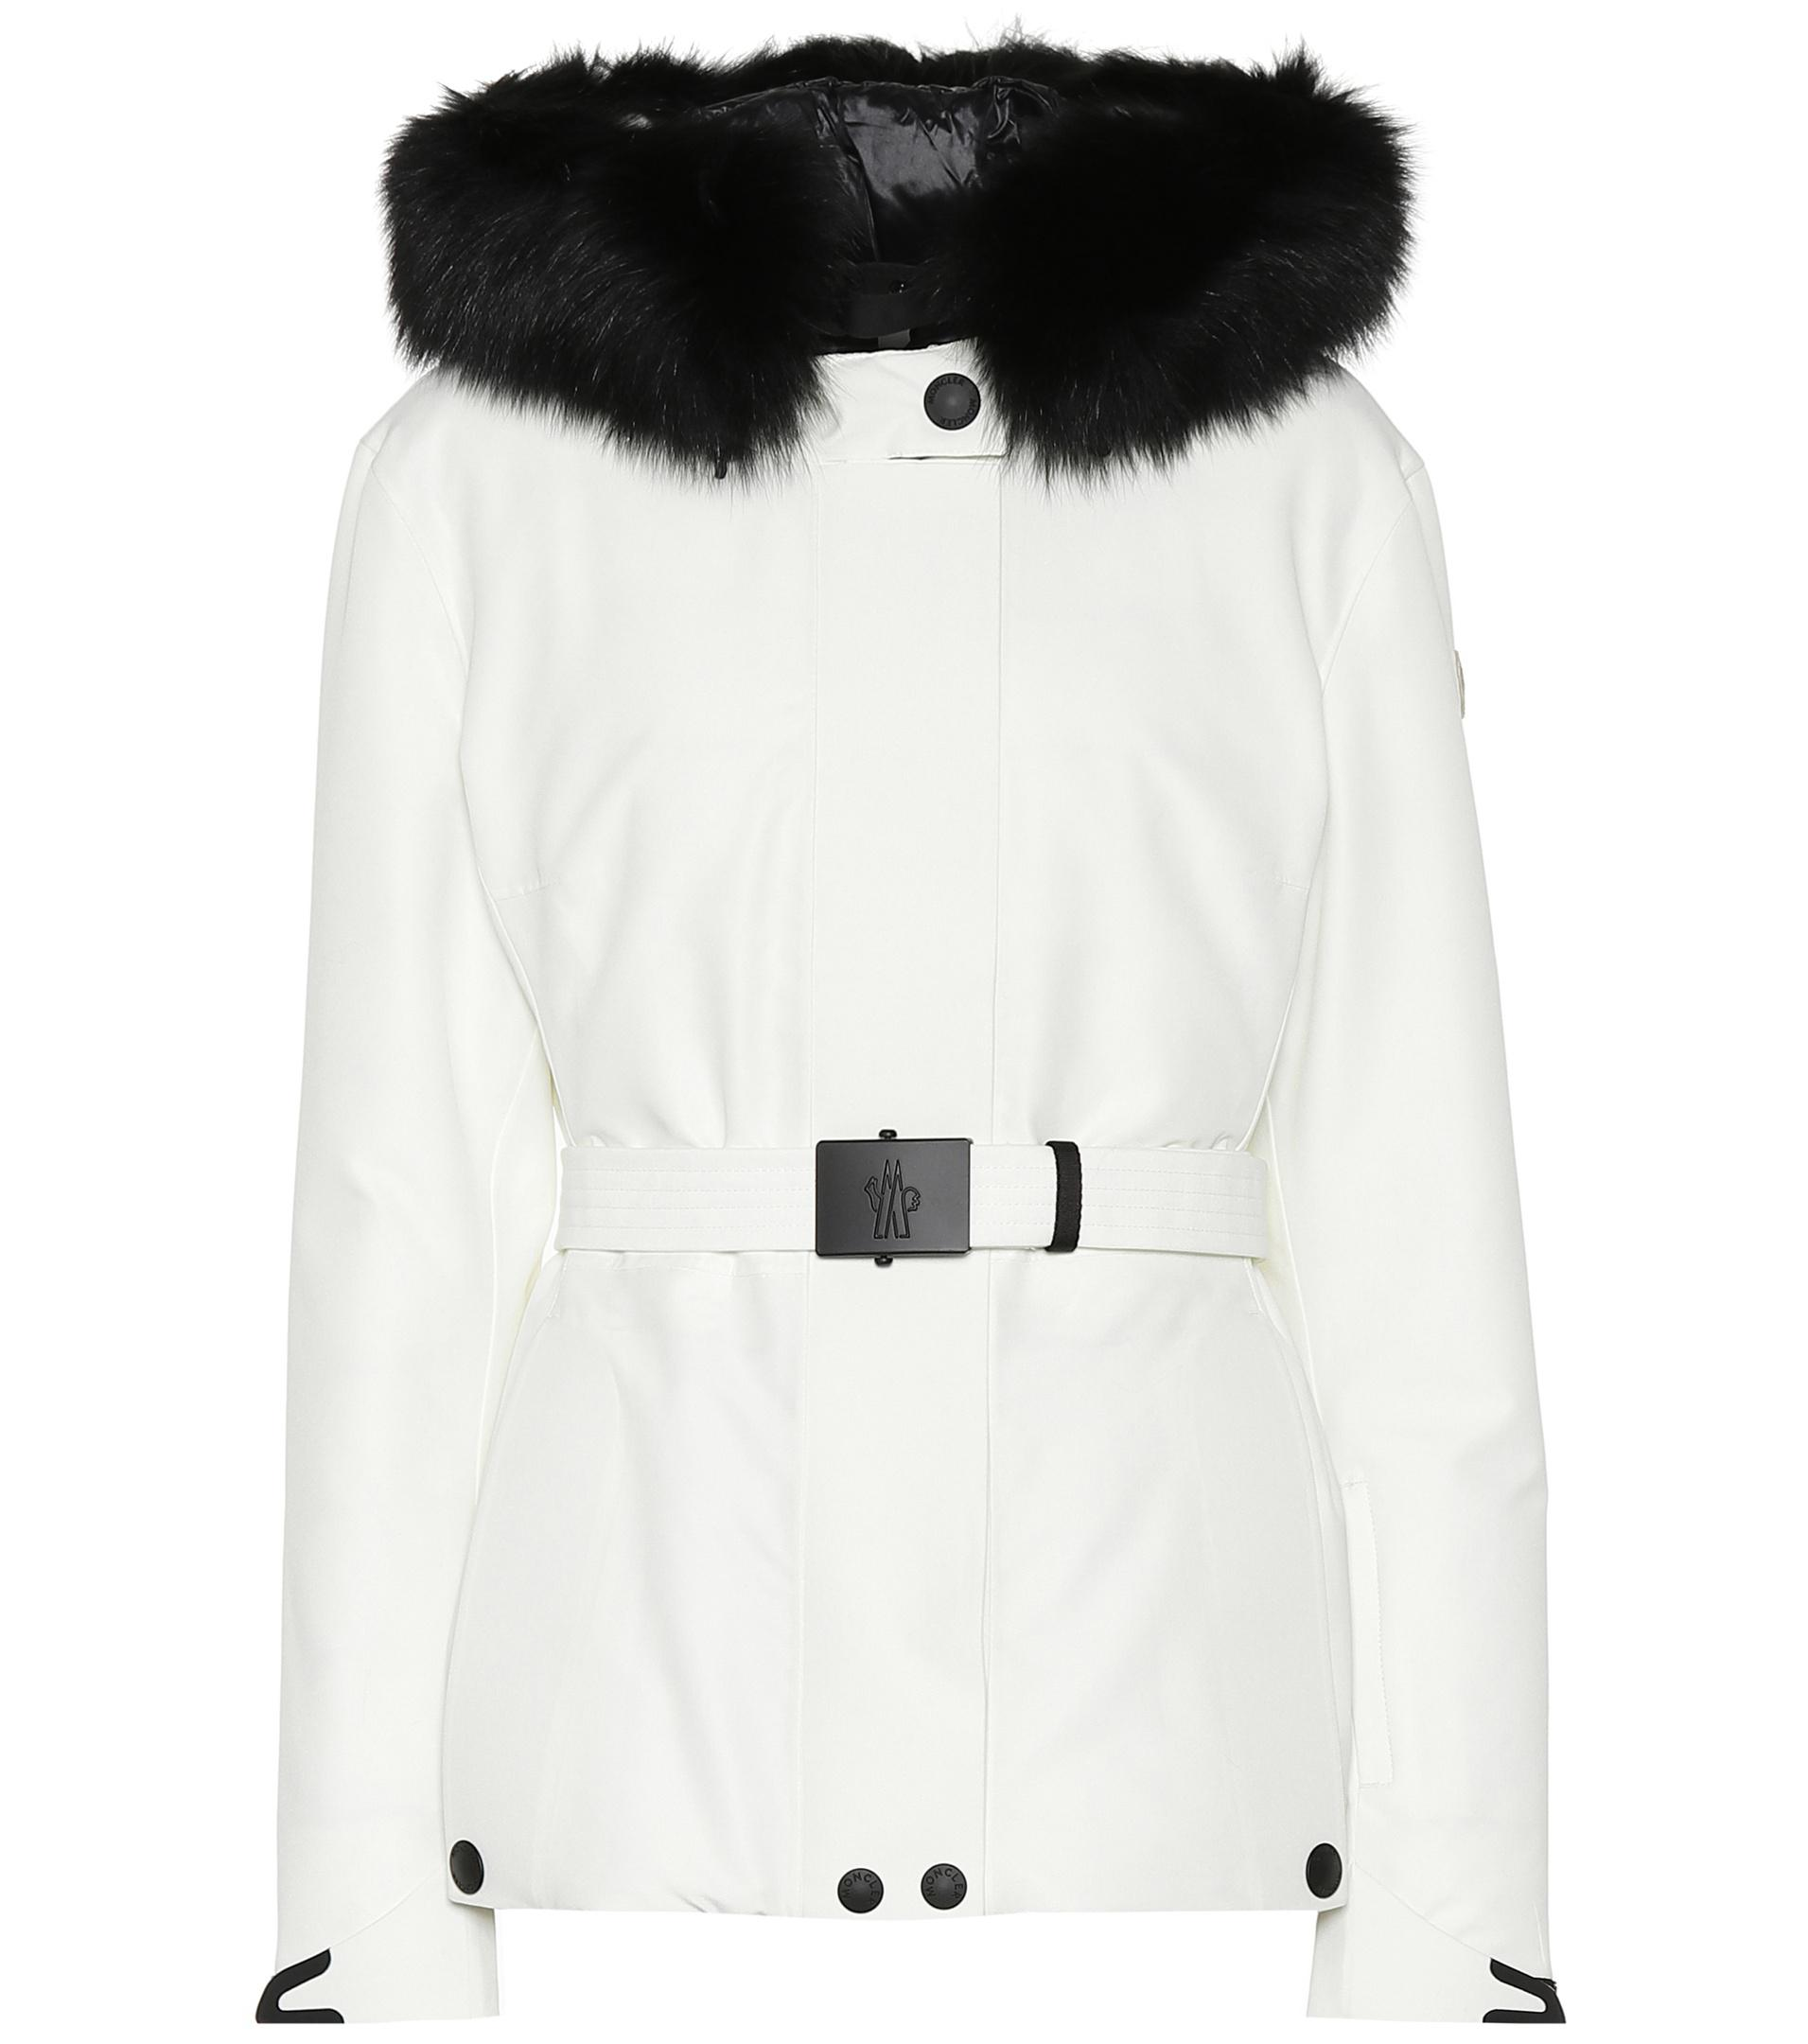 e075b101a Moncler Grenoble Laplance Down Ski Jacket in White - Lyst